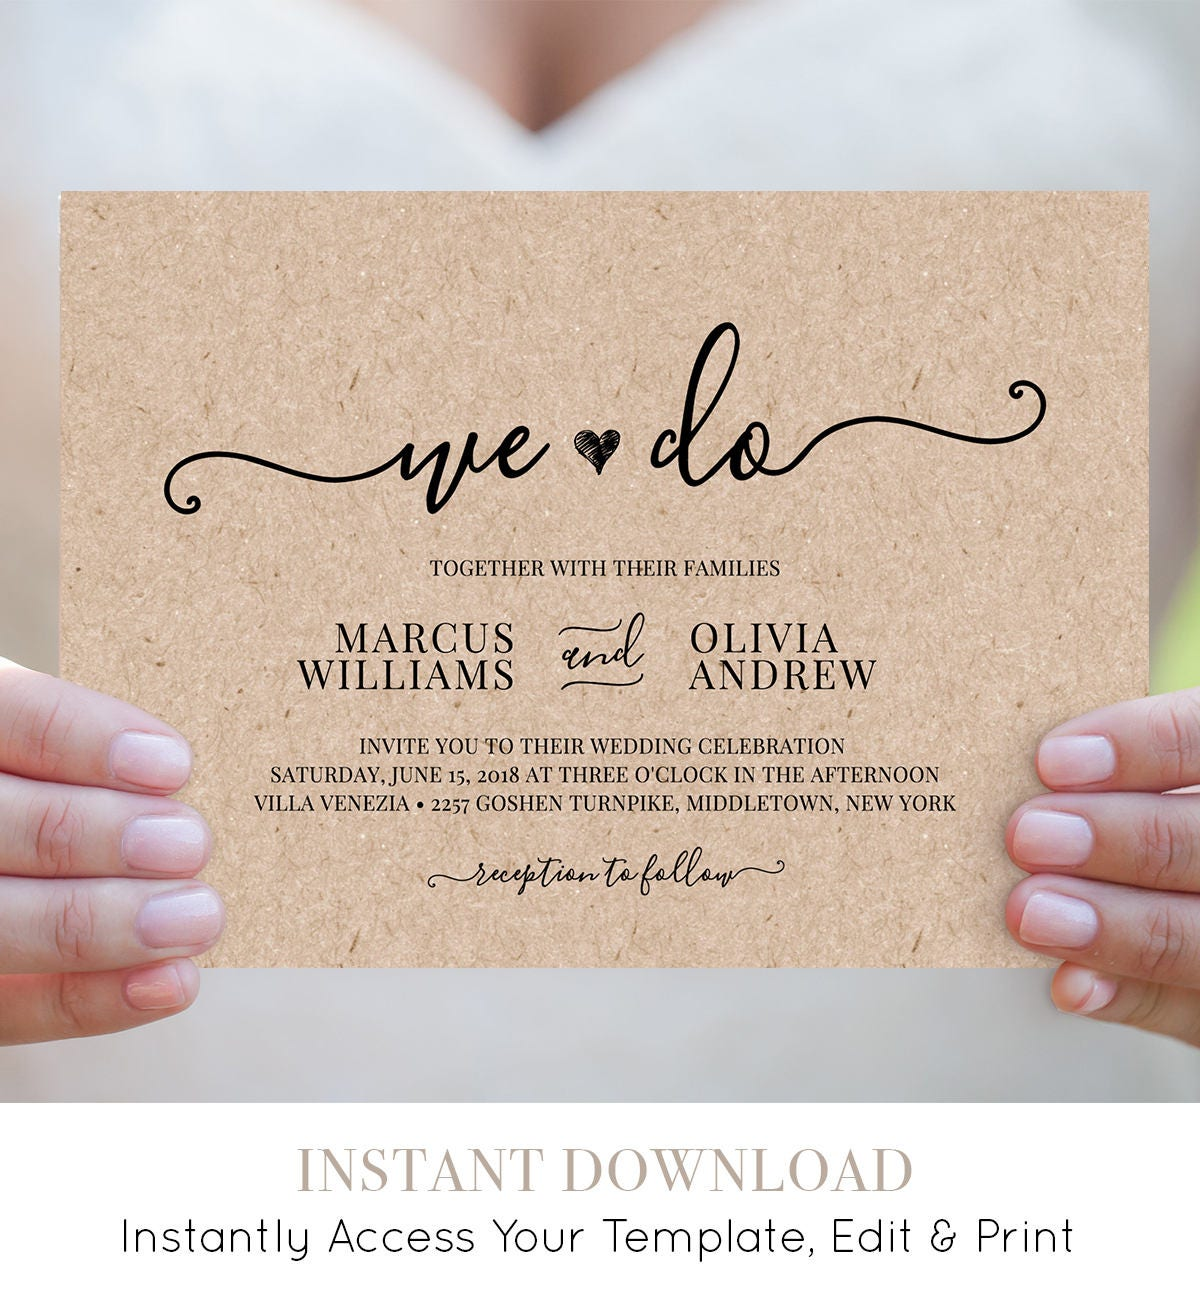 We do wedding invitation template printable heart wedding invite we do wedding invitation template printable heart wedding invite rsvp details card instant download editable modern wedding 030a stopboris Image collections